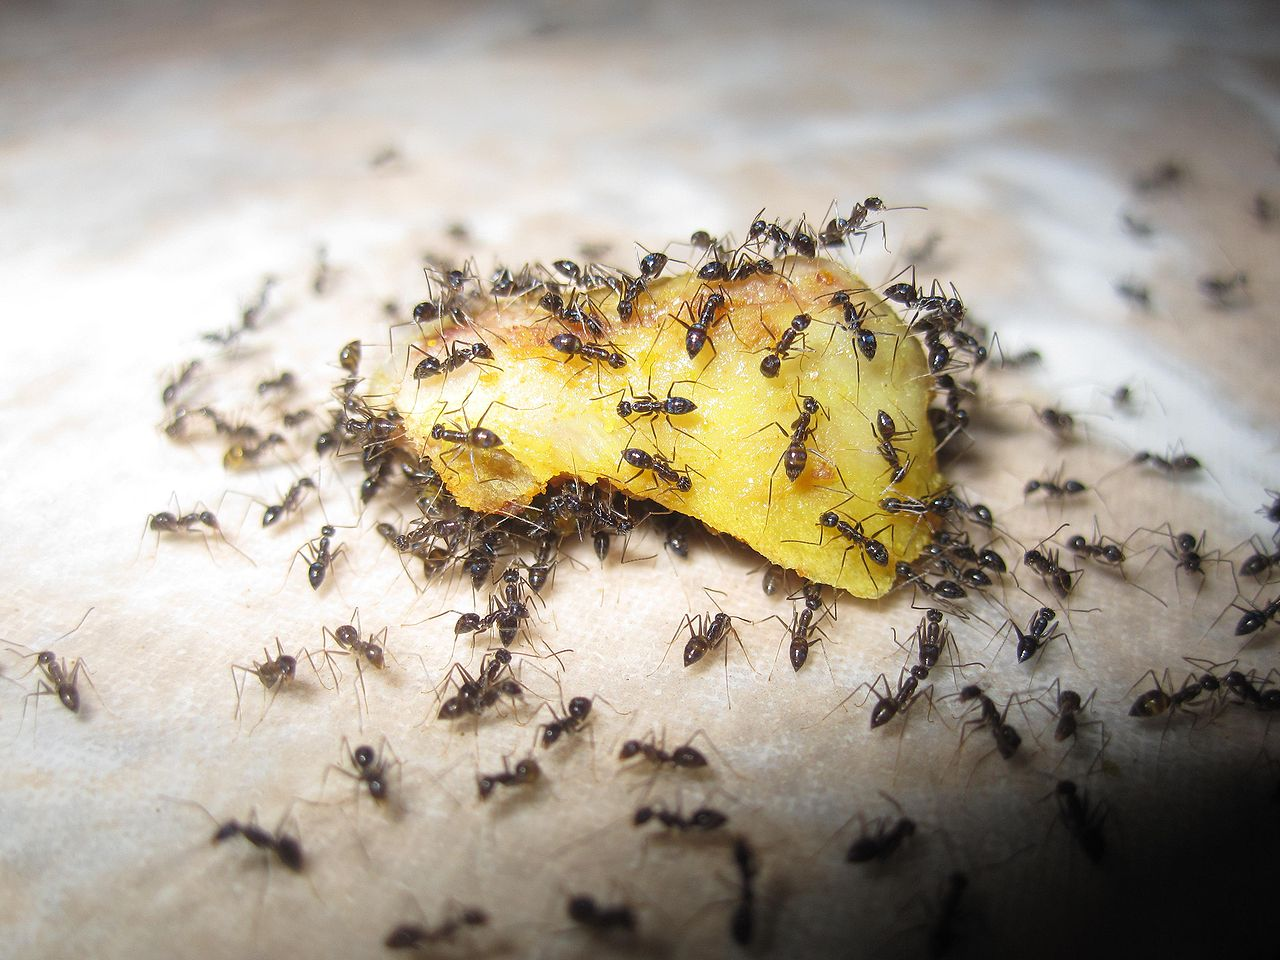 https://commons.wikimedia.org/wiki/File:Ants_eating_fruit.jpg